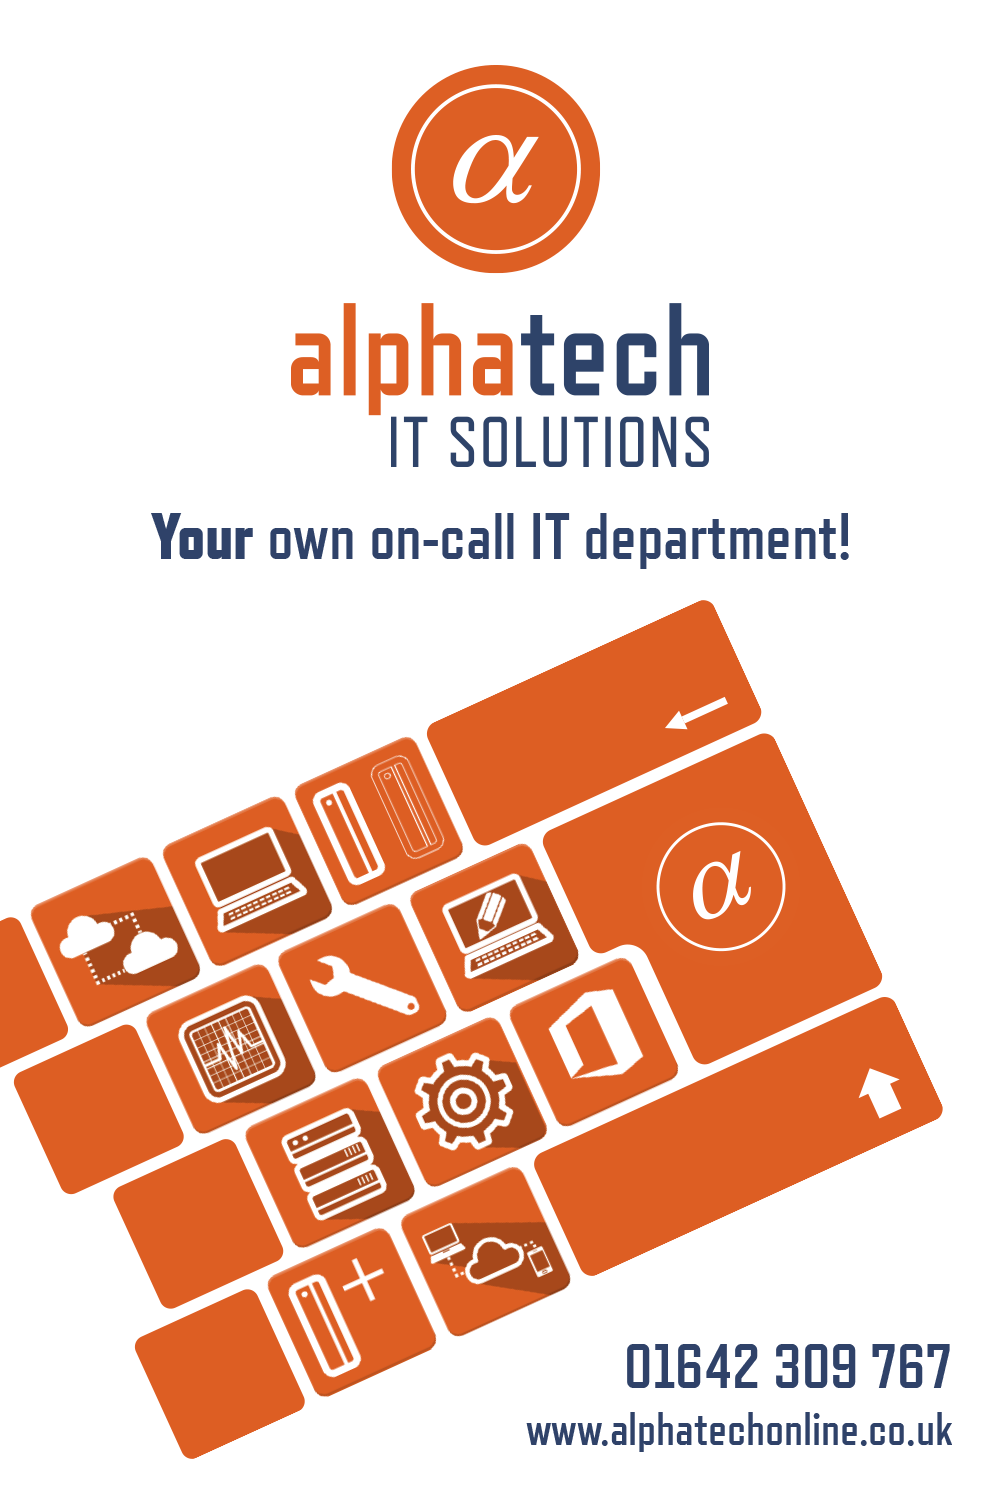 alphatech solutions Alphatech IT Solutions on Behance